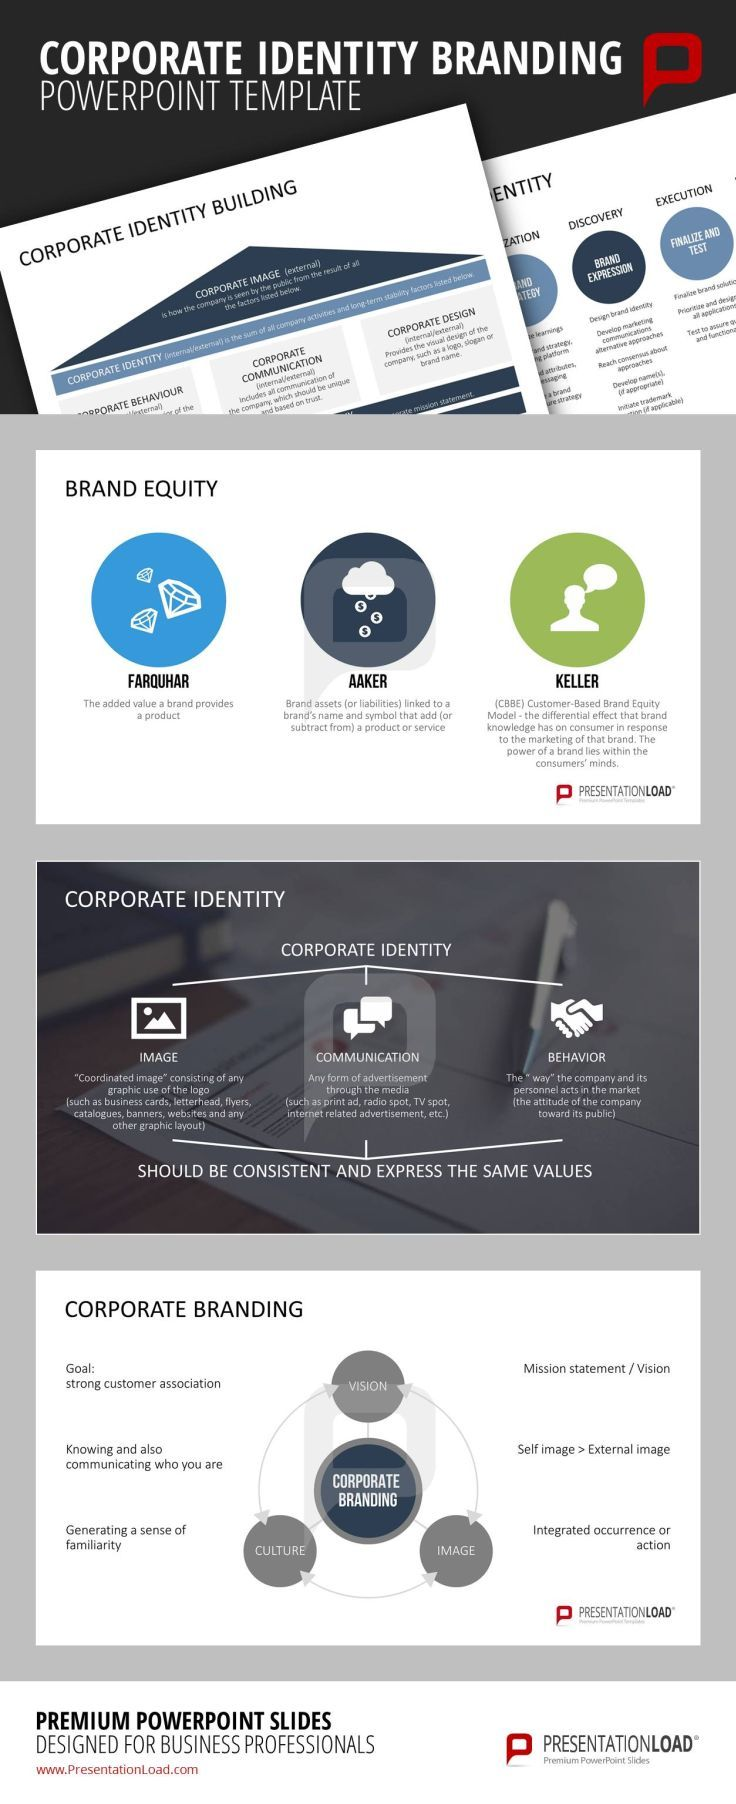 17 best images about company presentation powerpoint templates on pinterest branding value. Black Bedroom Furniture Sets. Home Design Ideas